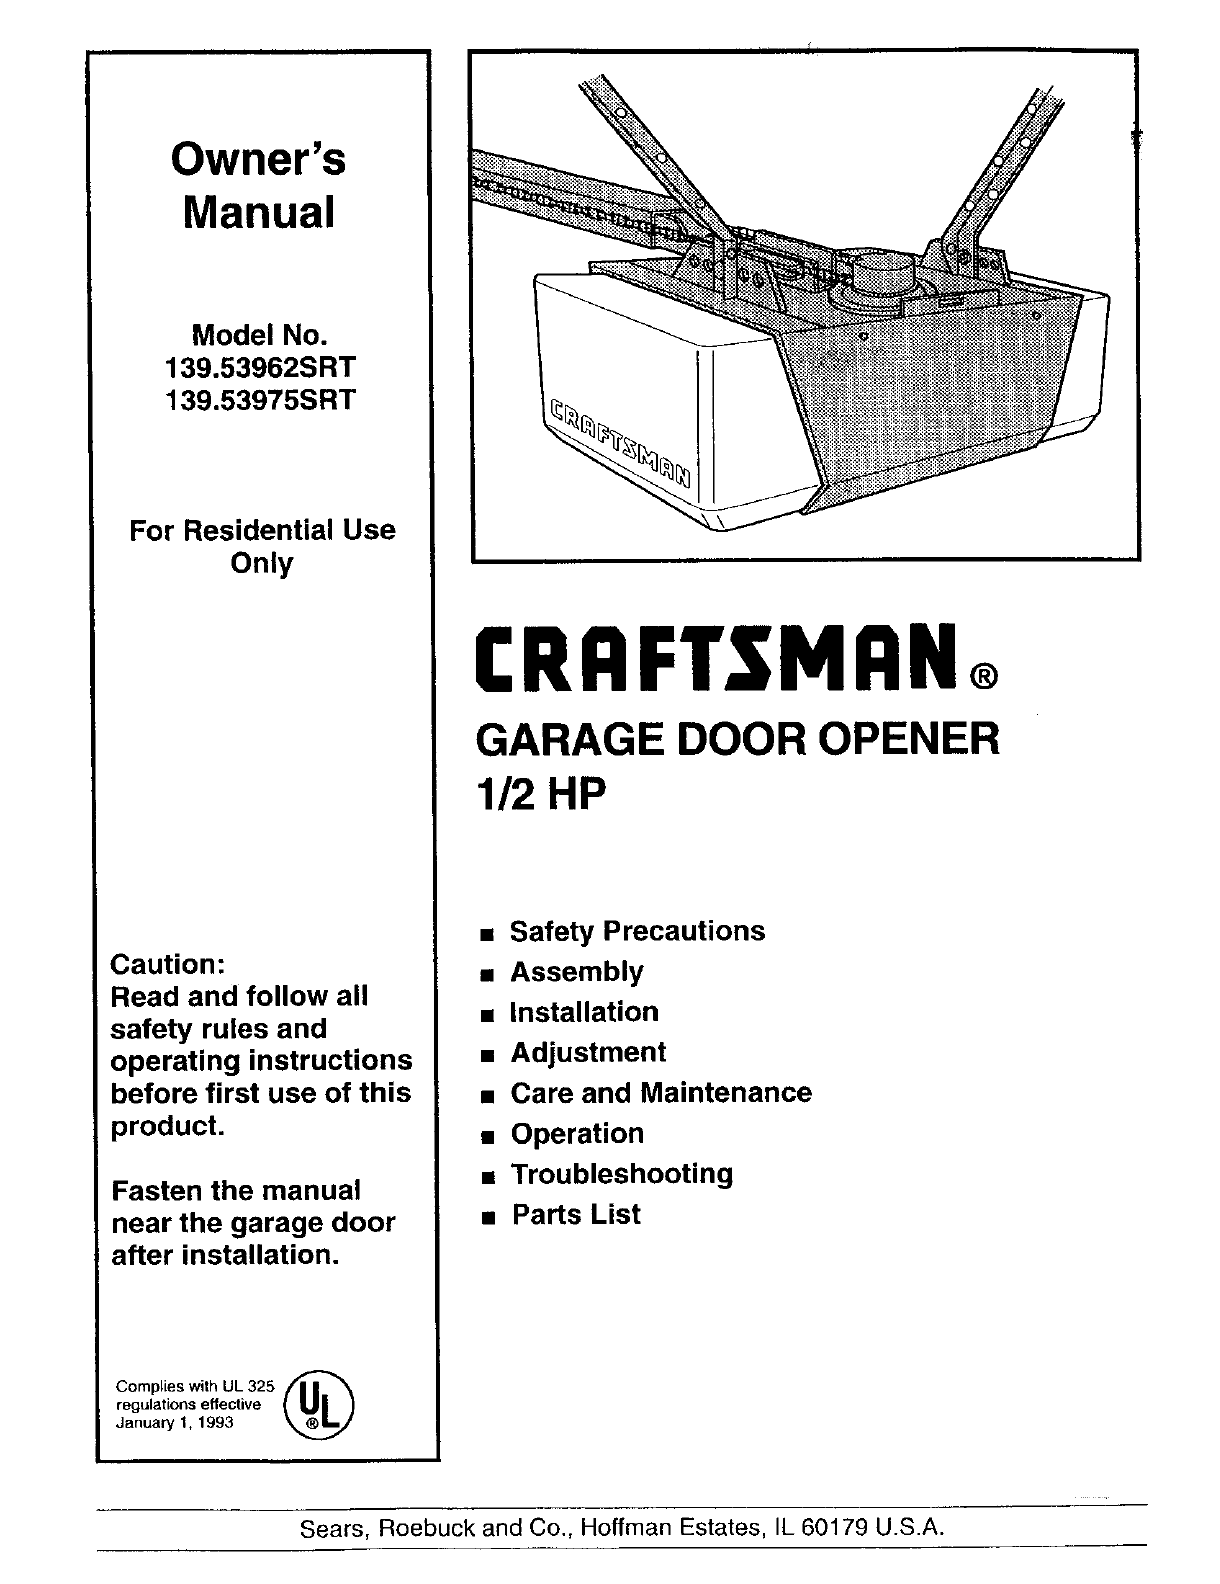 Craftsman Garage Door Opener 139.53962 SRT User Guide